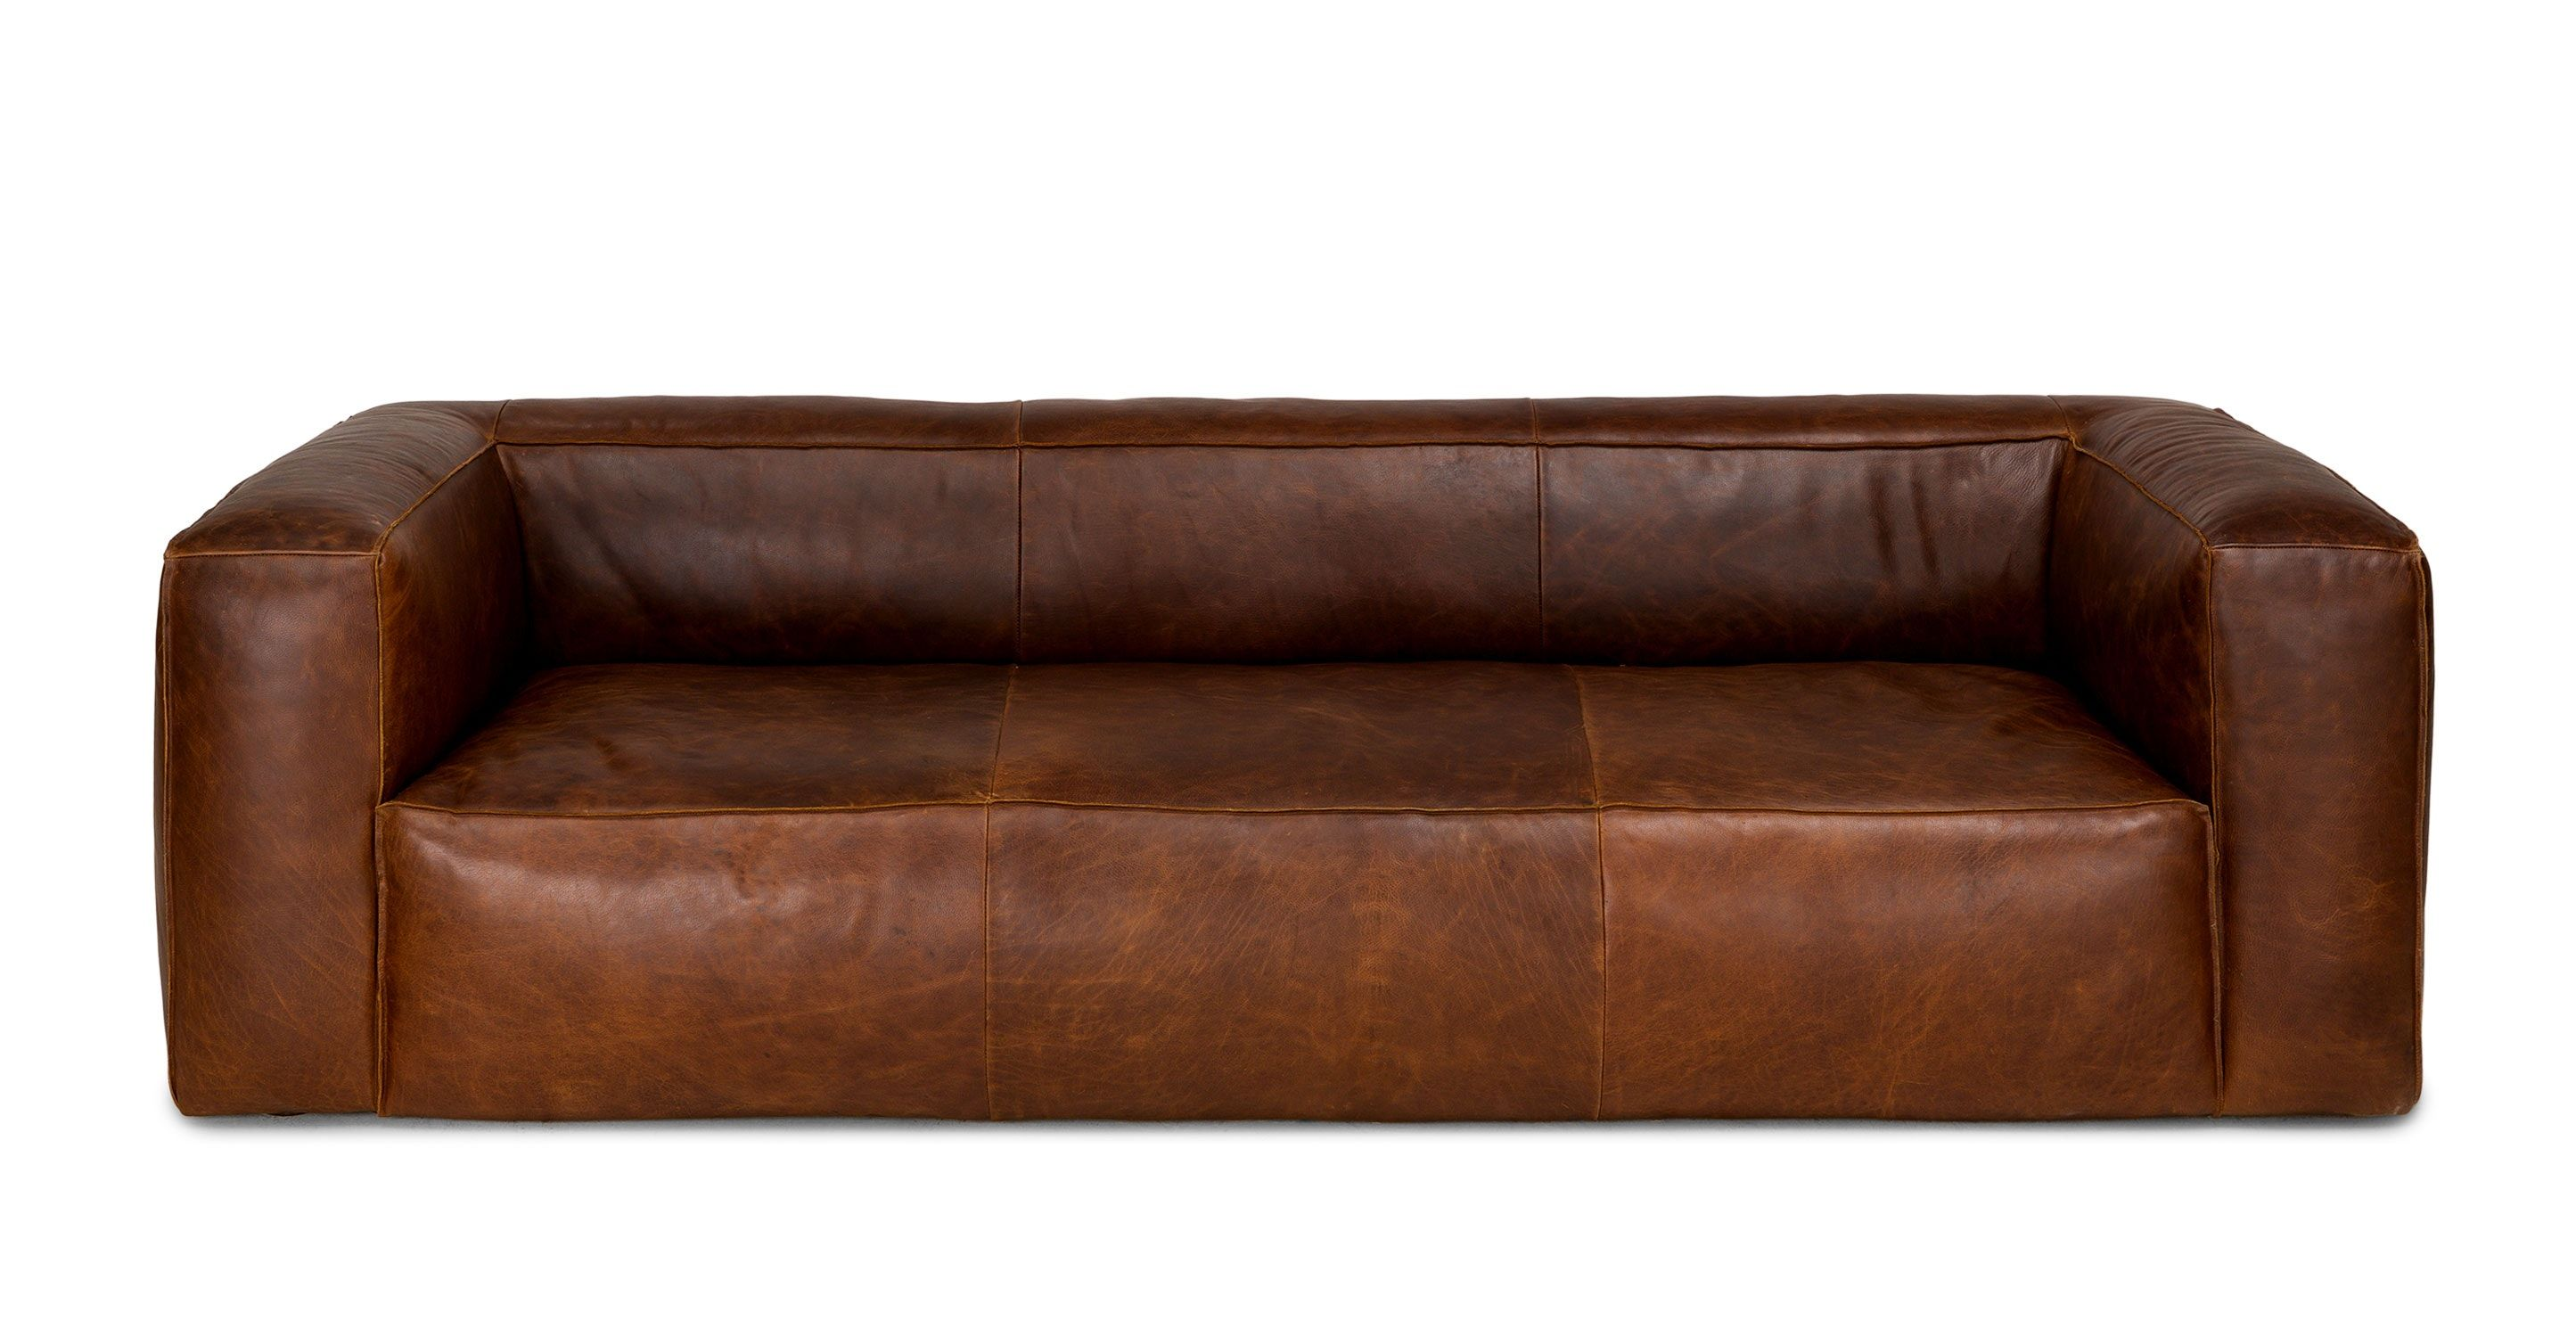 Brown Sofa Italian Leather Upholstered